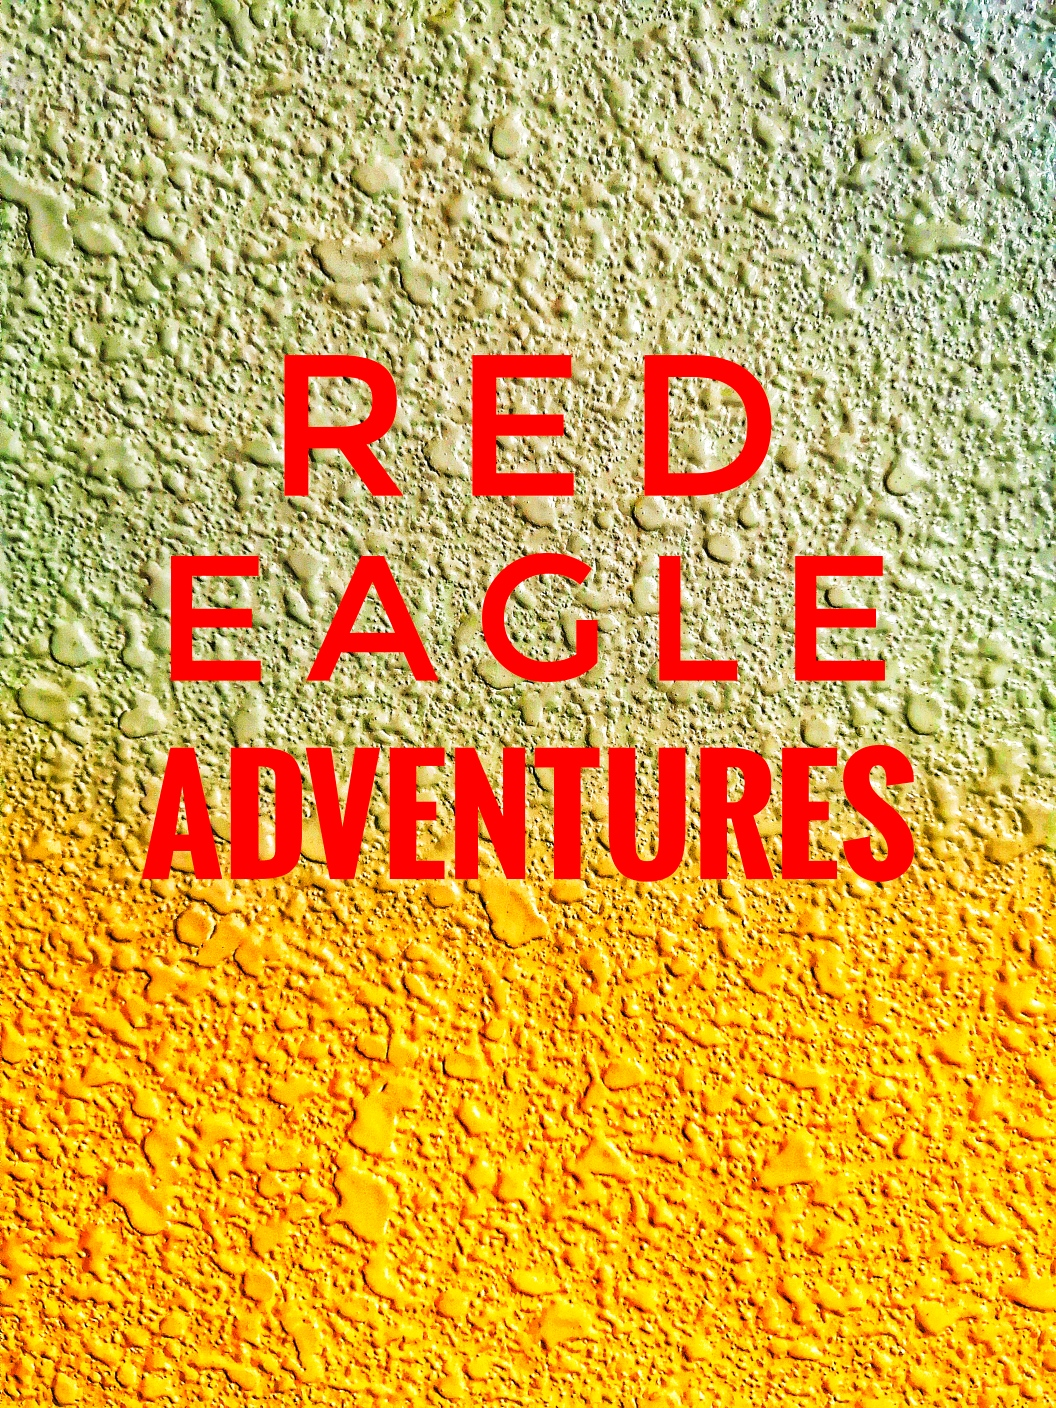 RED EAGLE ADVENTURS